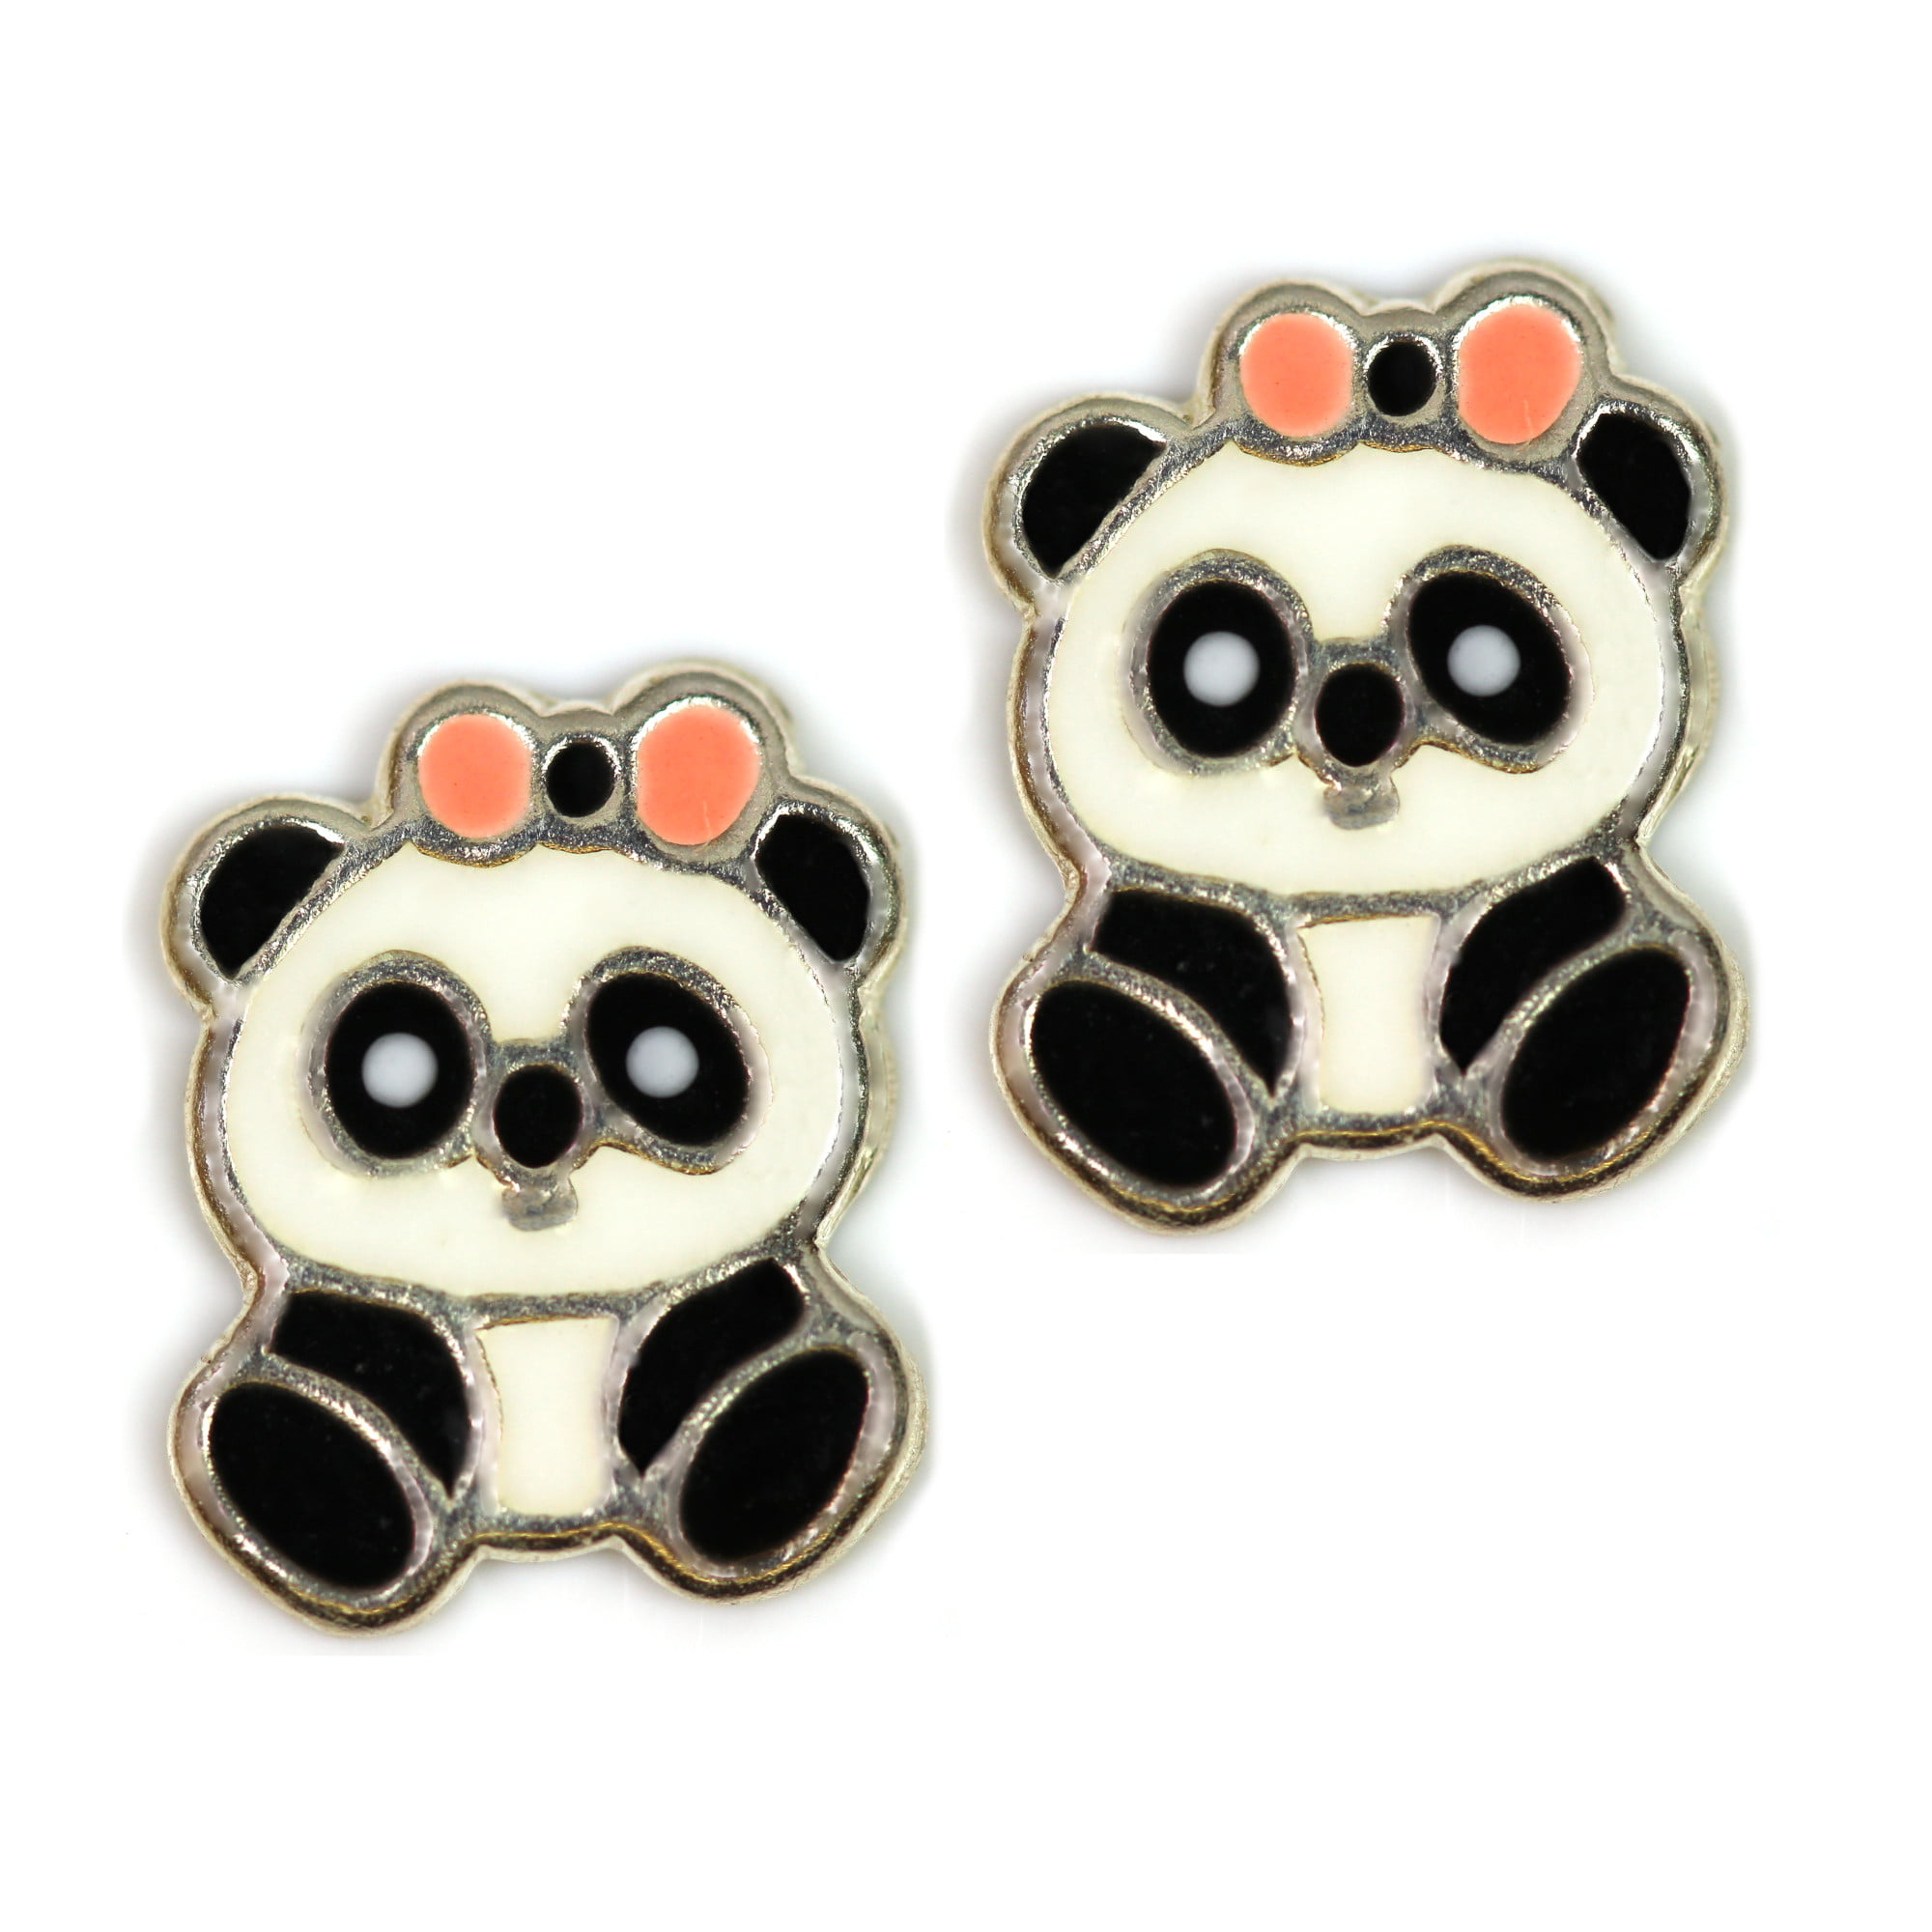 Cute panda earrings in silver